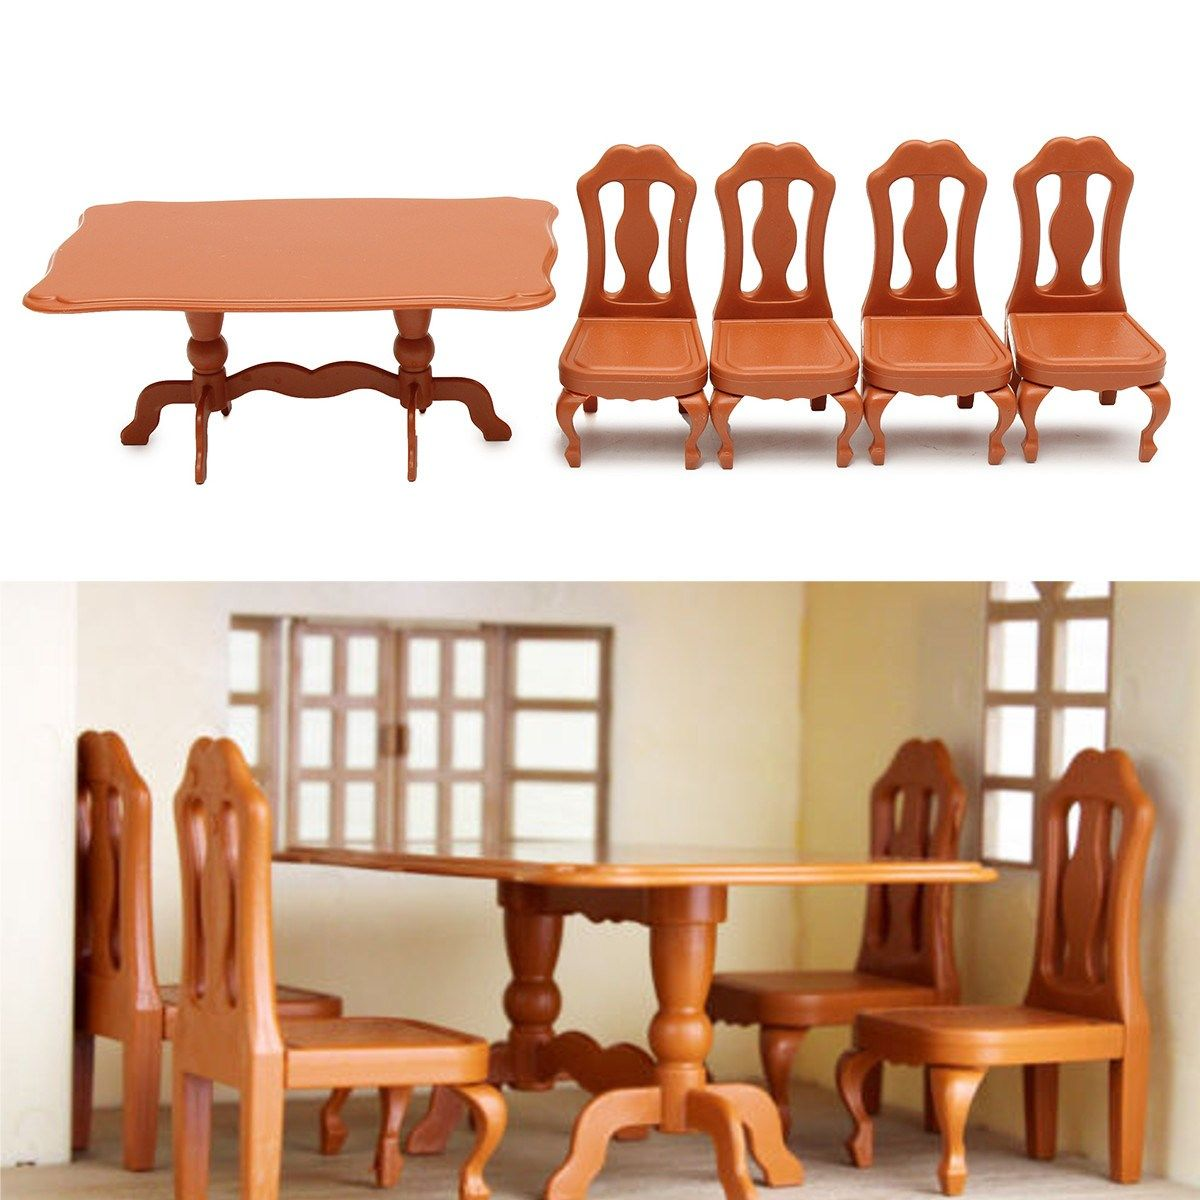 where to buy miniature furniture. Beautiful Furniture 876  Awesome DIY Miniatura Furniture Dining Tables Chairs Sets For Mini  Doll House Miniatures Toys Gifts Children Adult Buy It Now In Where To Miniature L